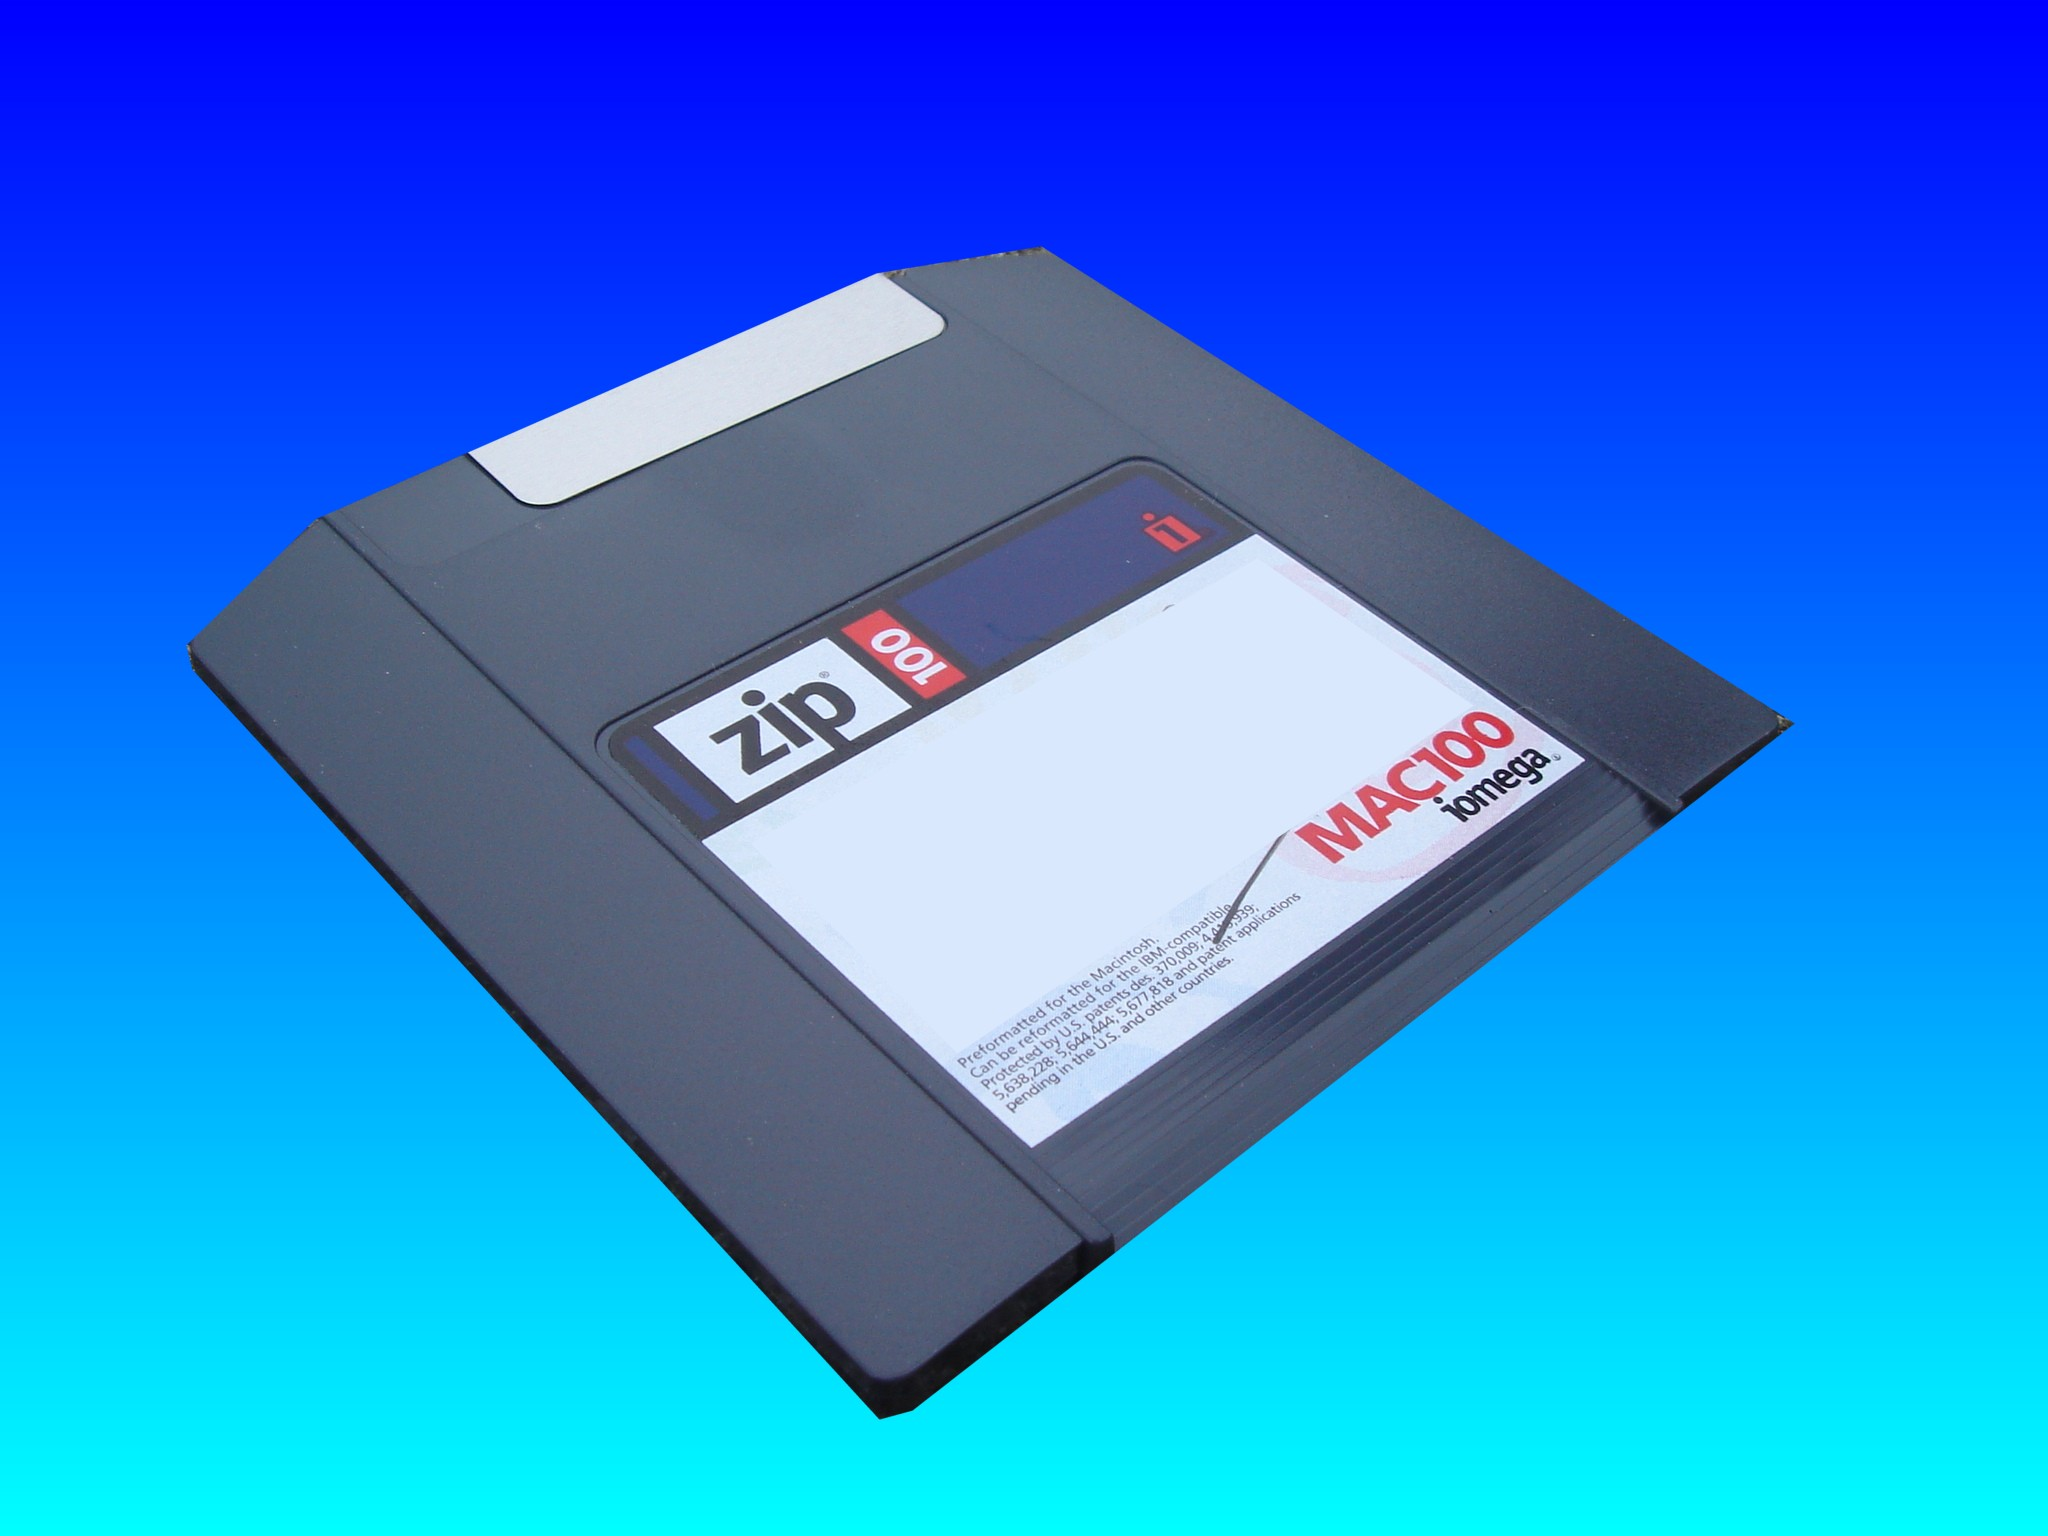 A Mac100 Zip disk with 100mb capacity.